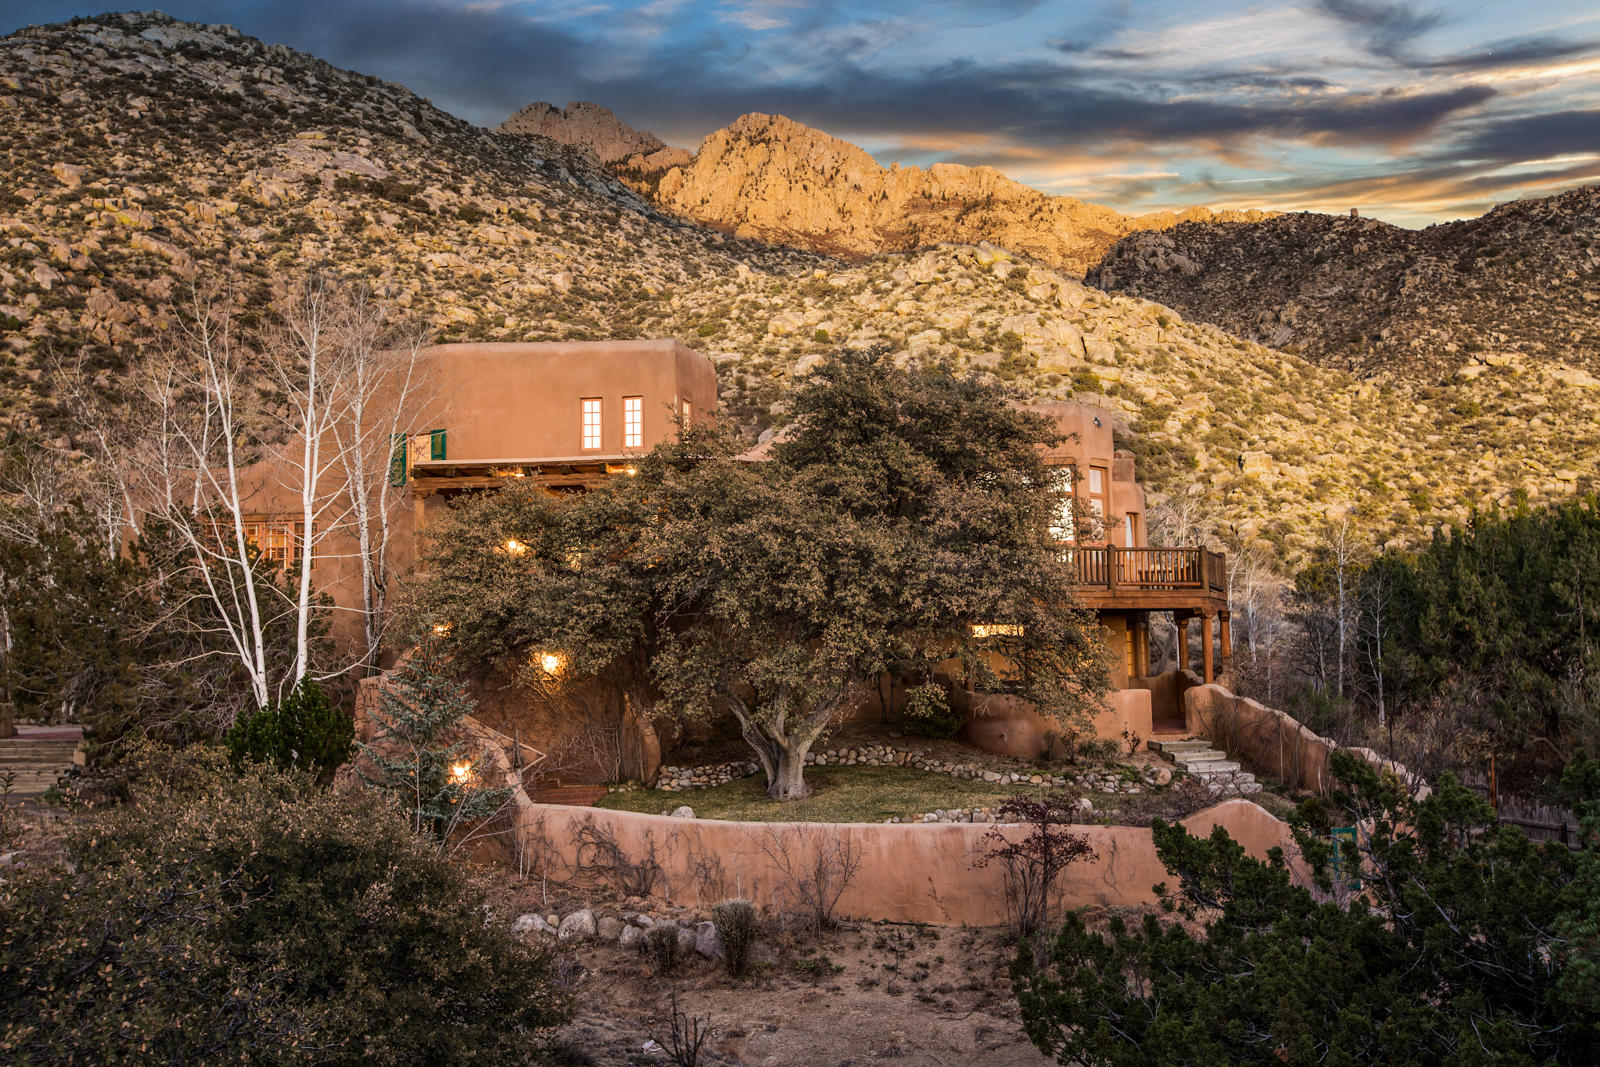 Absolutely stunning George Lewton custom adobe on a serene and secluded lot, backing up to the National Forest in Sandia Heights North! This awe-inspiring property has City & Mountain Views from almost every room, several fireplaces (including one in kitchen), high ceilings, an abundance of light, and patios and decks to capture the Views, along with the quiet and solitude that this sanctuary offers. Flagstone, saltillo, brick and wood floors, kiva fireplaces, vigas, latillas, and all the charm you'd find in Santa Fe! 378sqft workshop, 104sqft craft space & 182sqft wine cellar not included in square footage. *** Please allow a 48h min. response time on any and all offers.